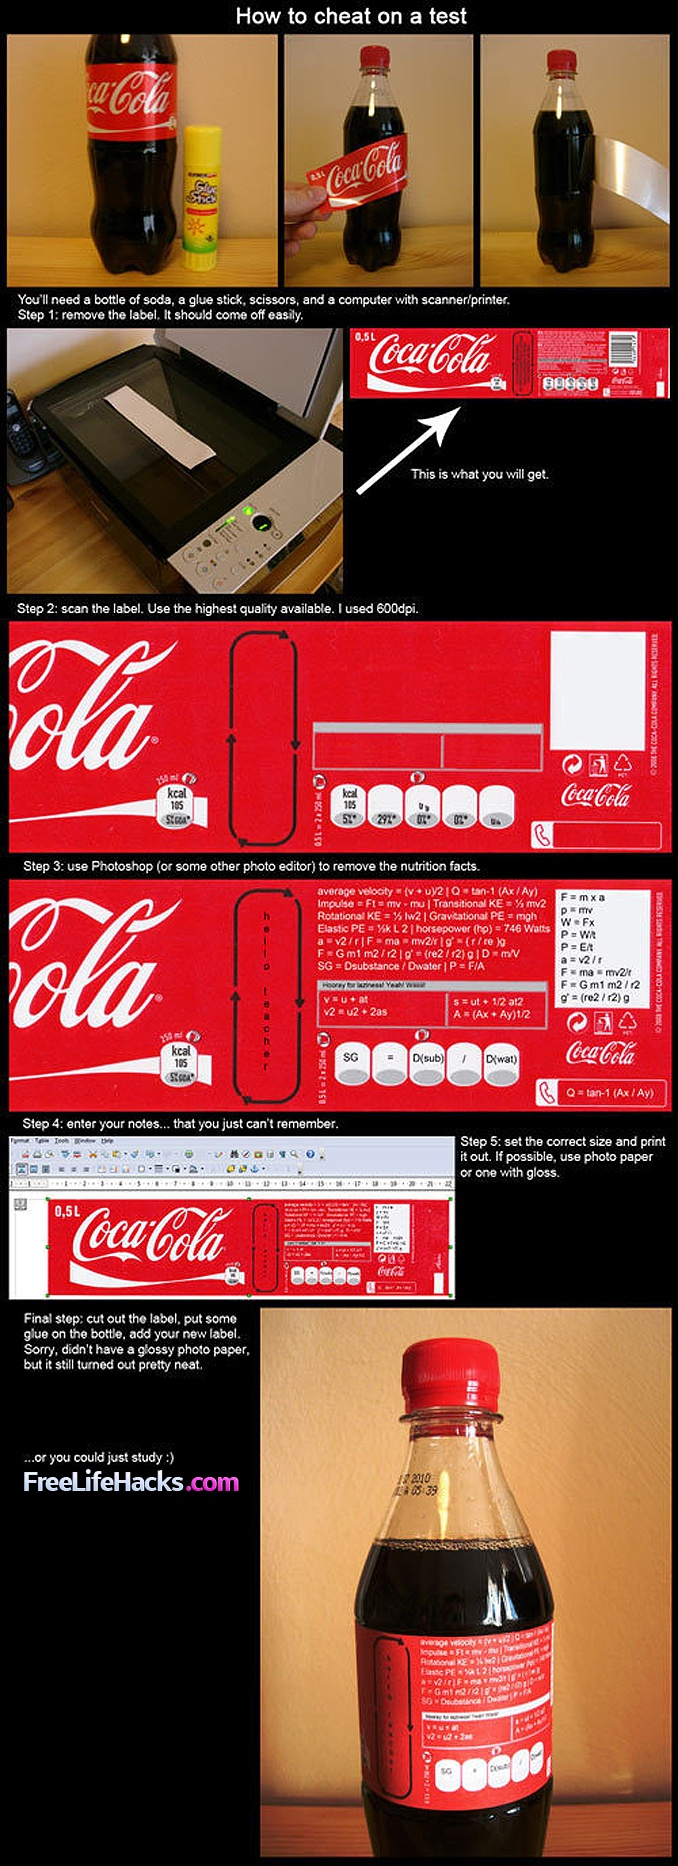 How to cheat on a test infographic <-- Damn kids these days have it so easy :p